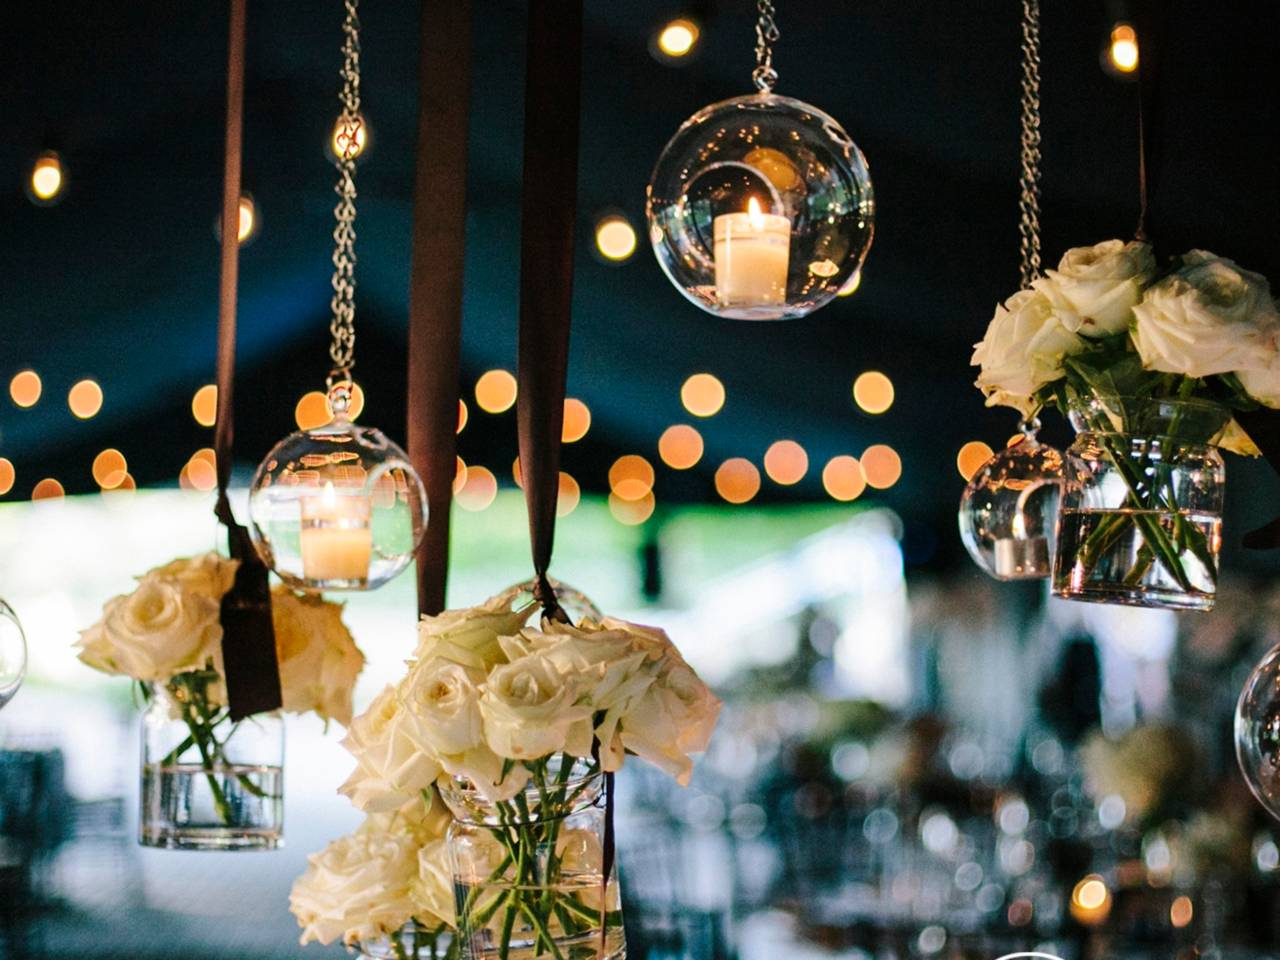 Lights And Flower Decorations At A Marquee Function.